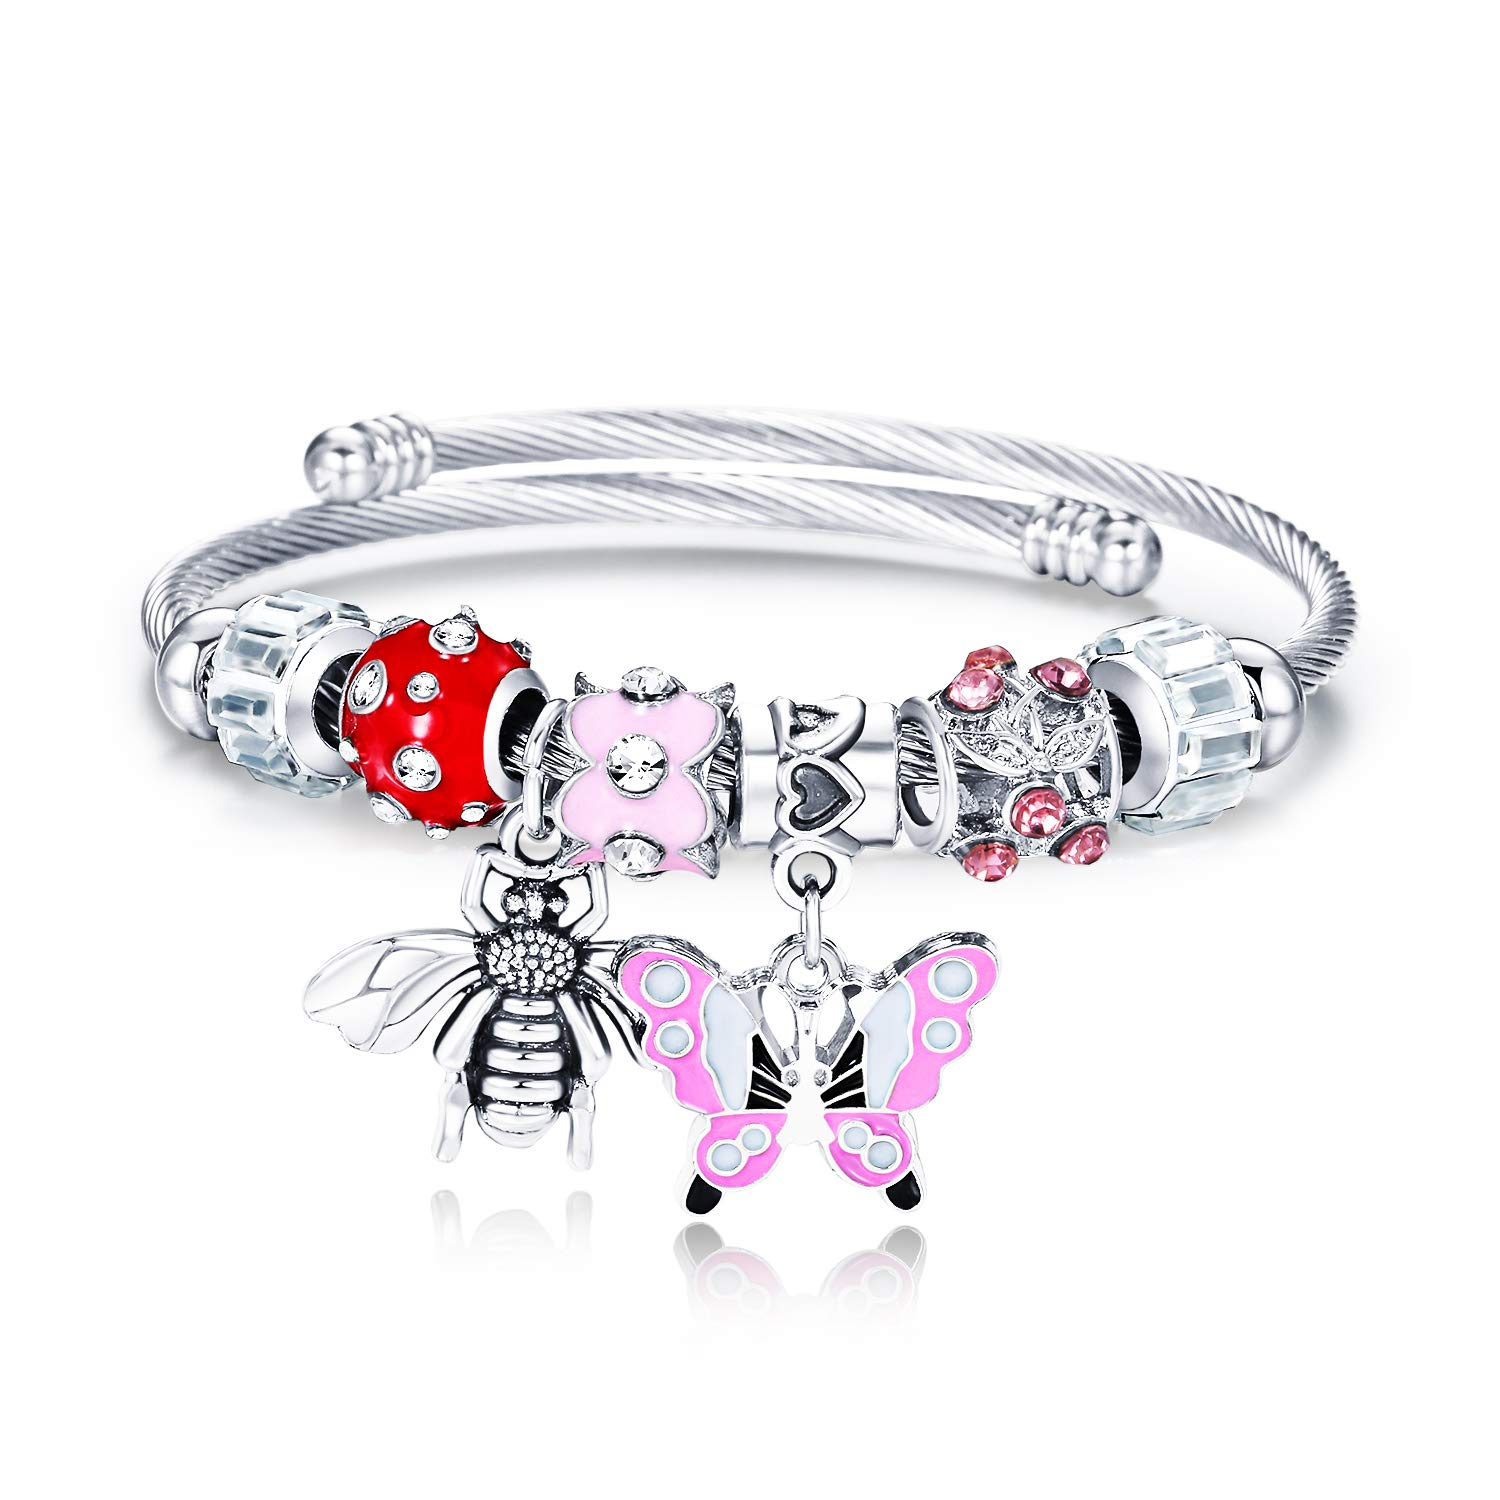 Crystal Beads Open Bracelets for Girls Aiwonted Stainless Steel Wrap Bracelets for Women Best Gifts on Valentines Day and Mothers Day /… Panda Pendant Bangles GS-panda Stainless Steel Wrap Bracelets for Women Pendant Bangles